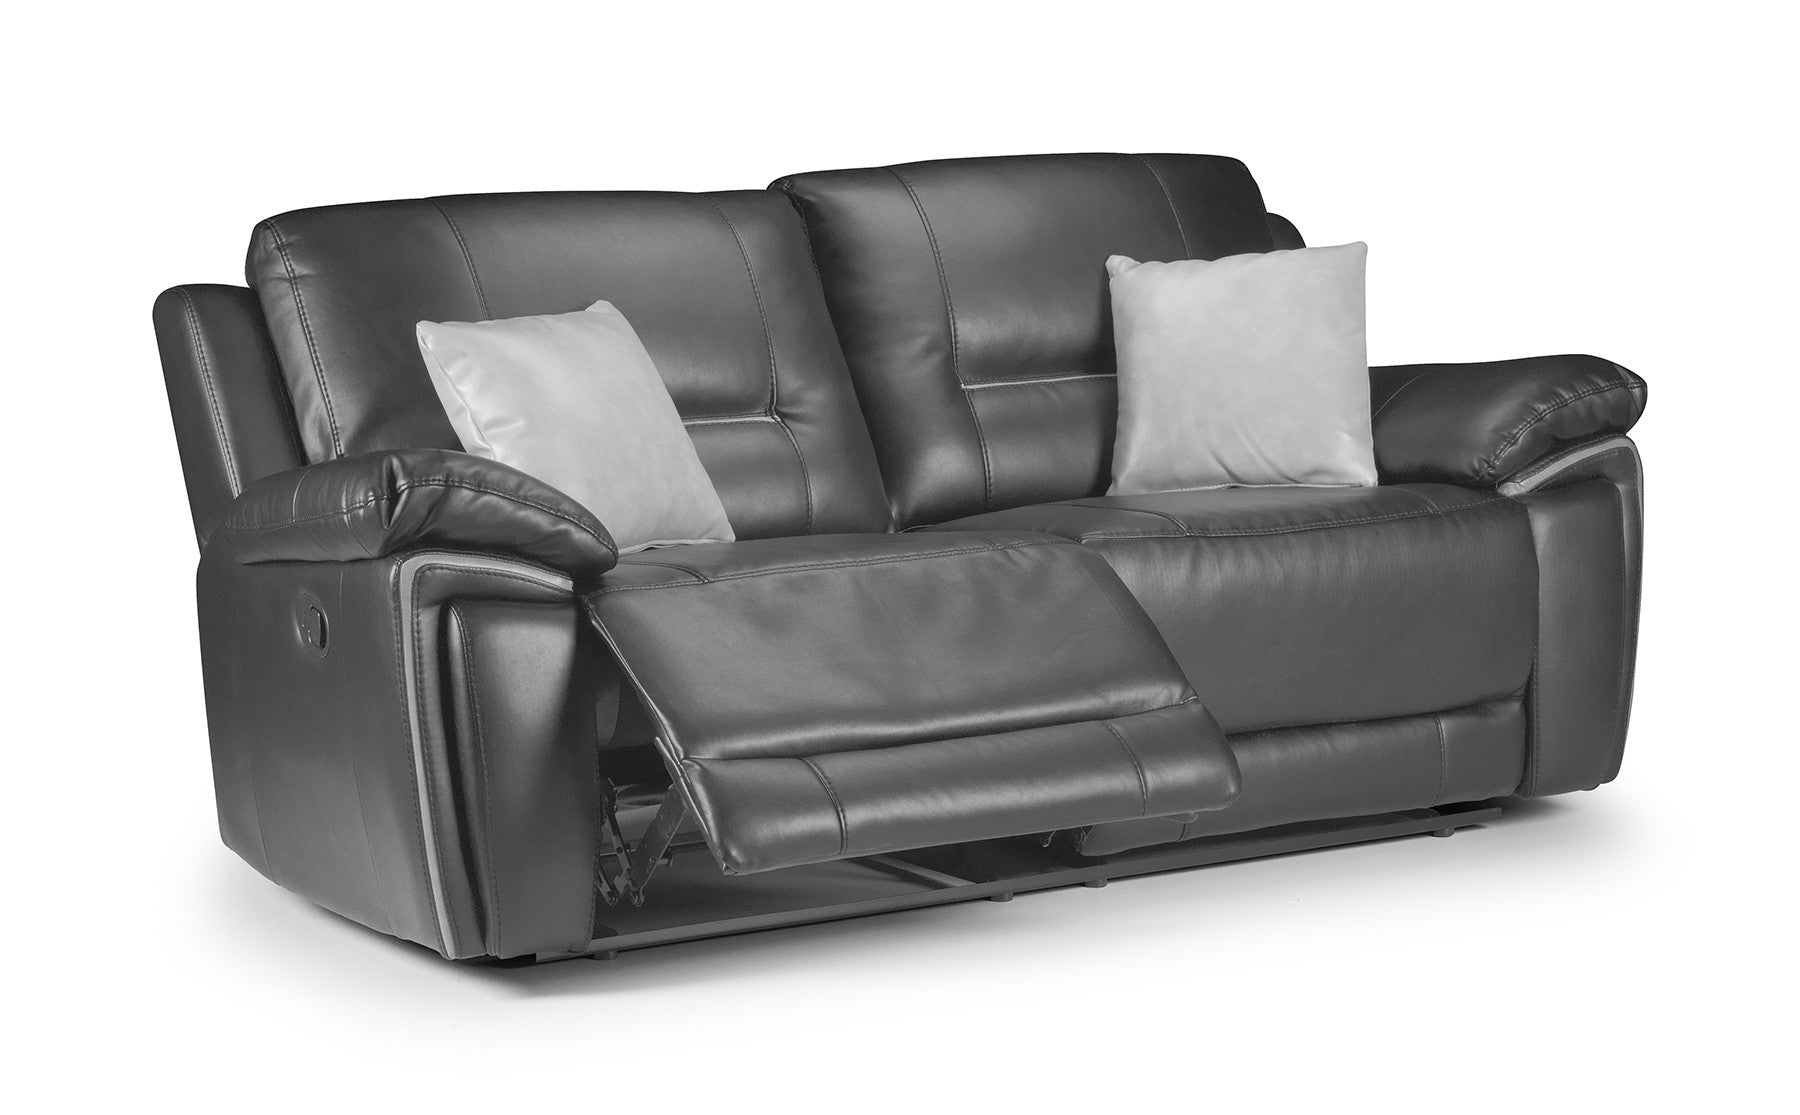 Recliner Sofas in Rossington – KC Sofas